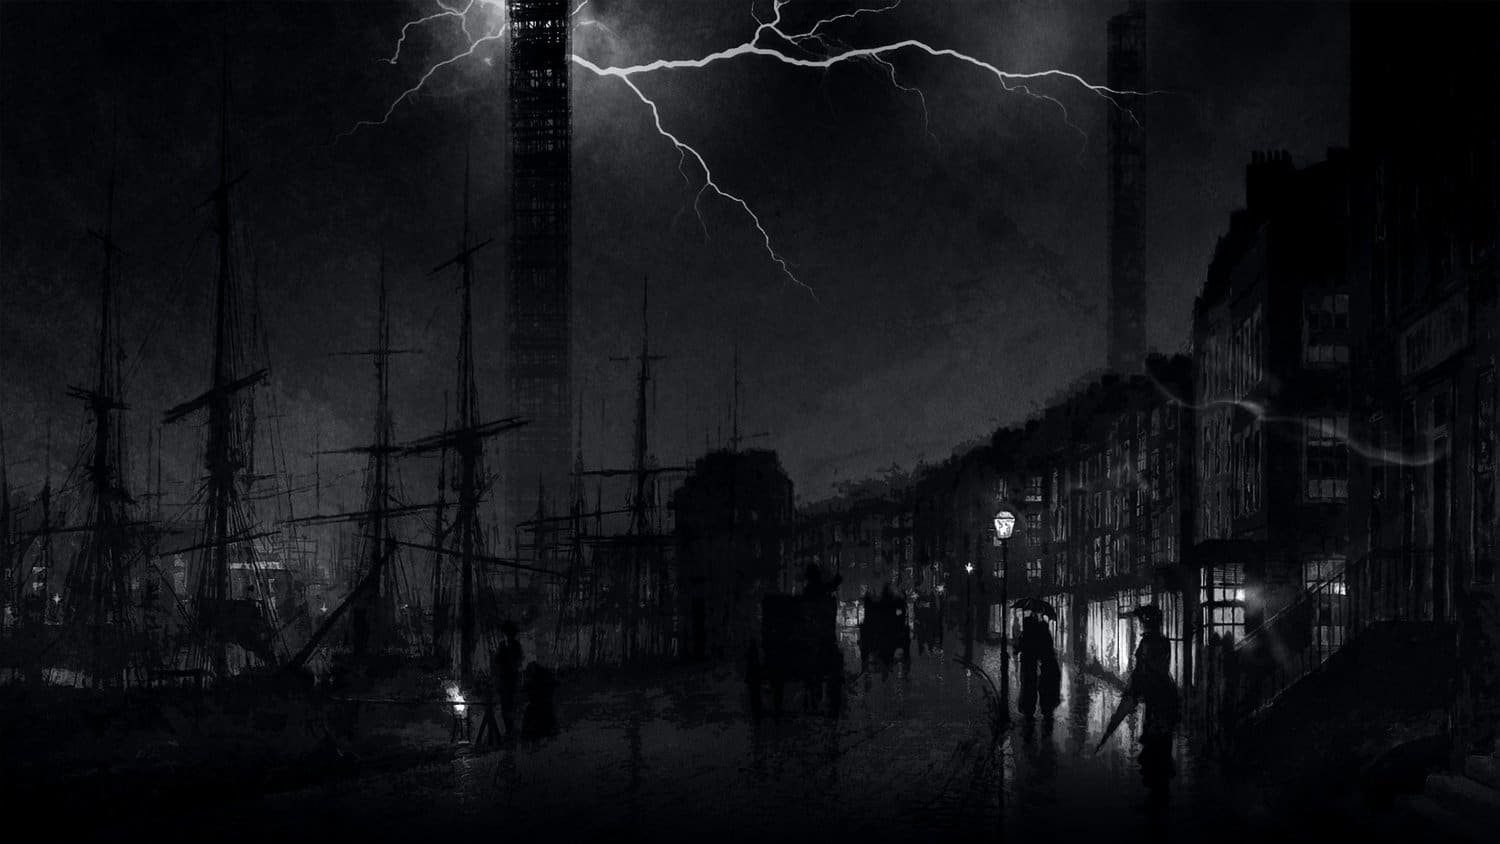 [Tabletop Terrors] Lie, Cheat, and Kill Your Way Through a Ghost and Demon Haunted City in BLADES IN THE DARK